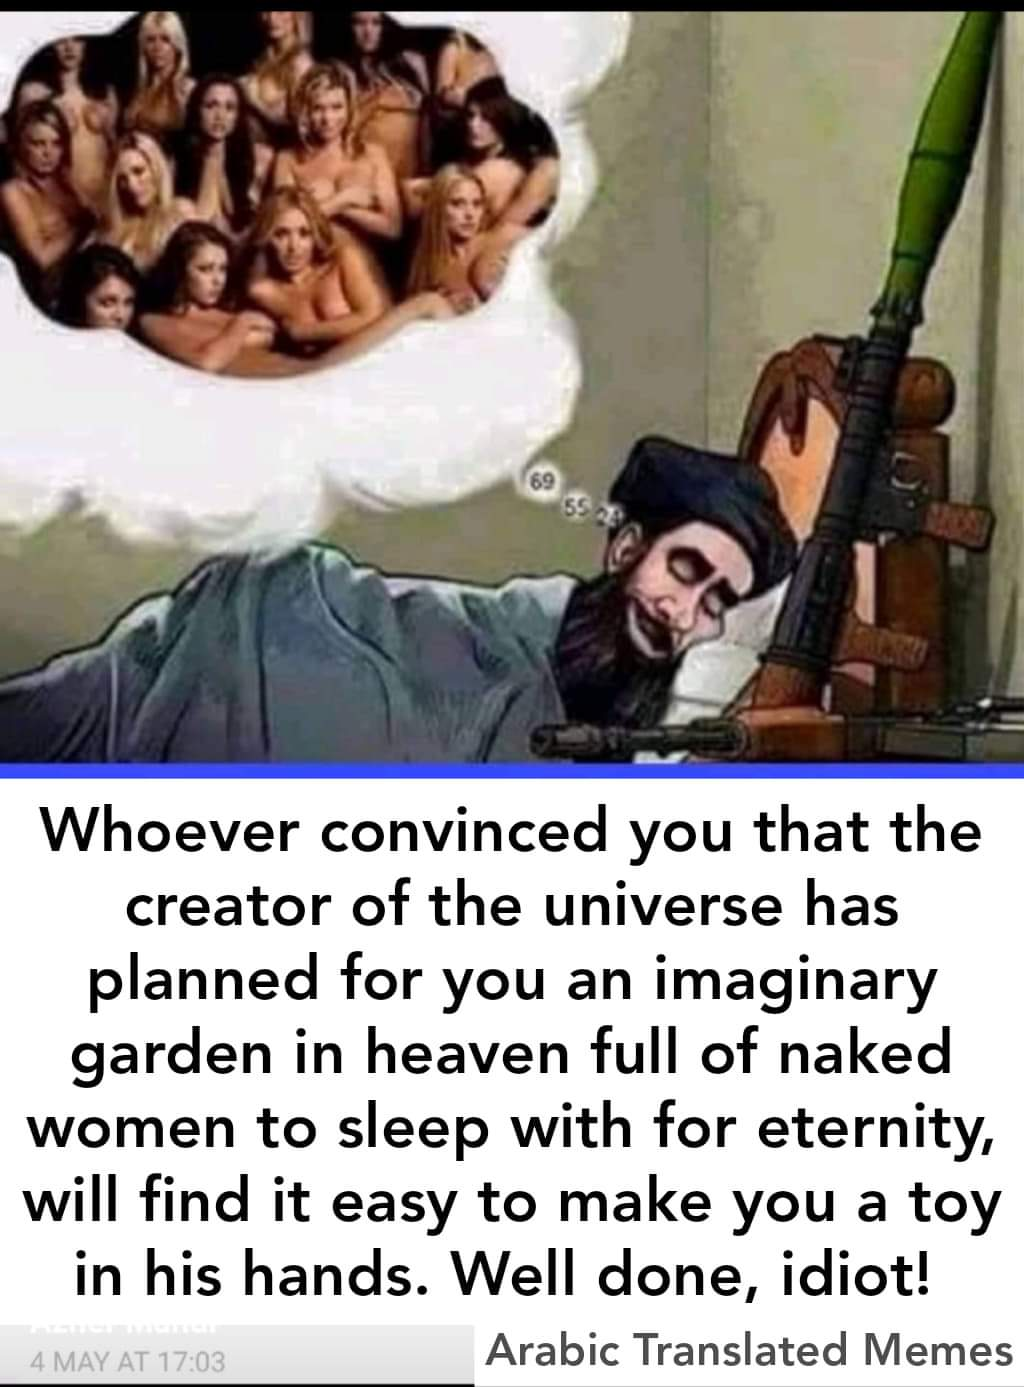 72 virgins afterlife dreaming stupidity imaginary heaven women sex idiot Islamist